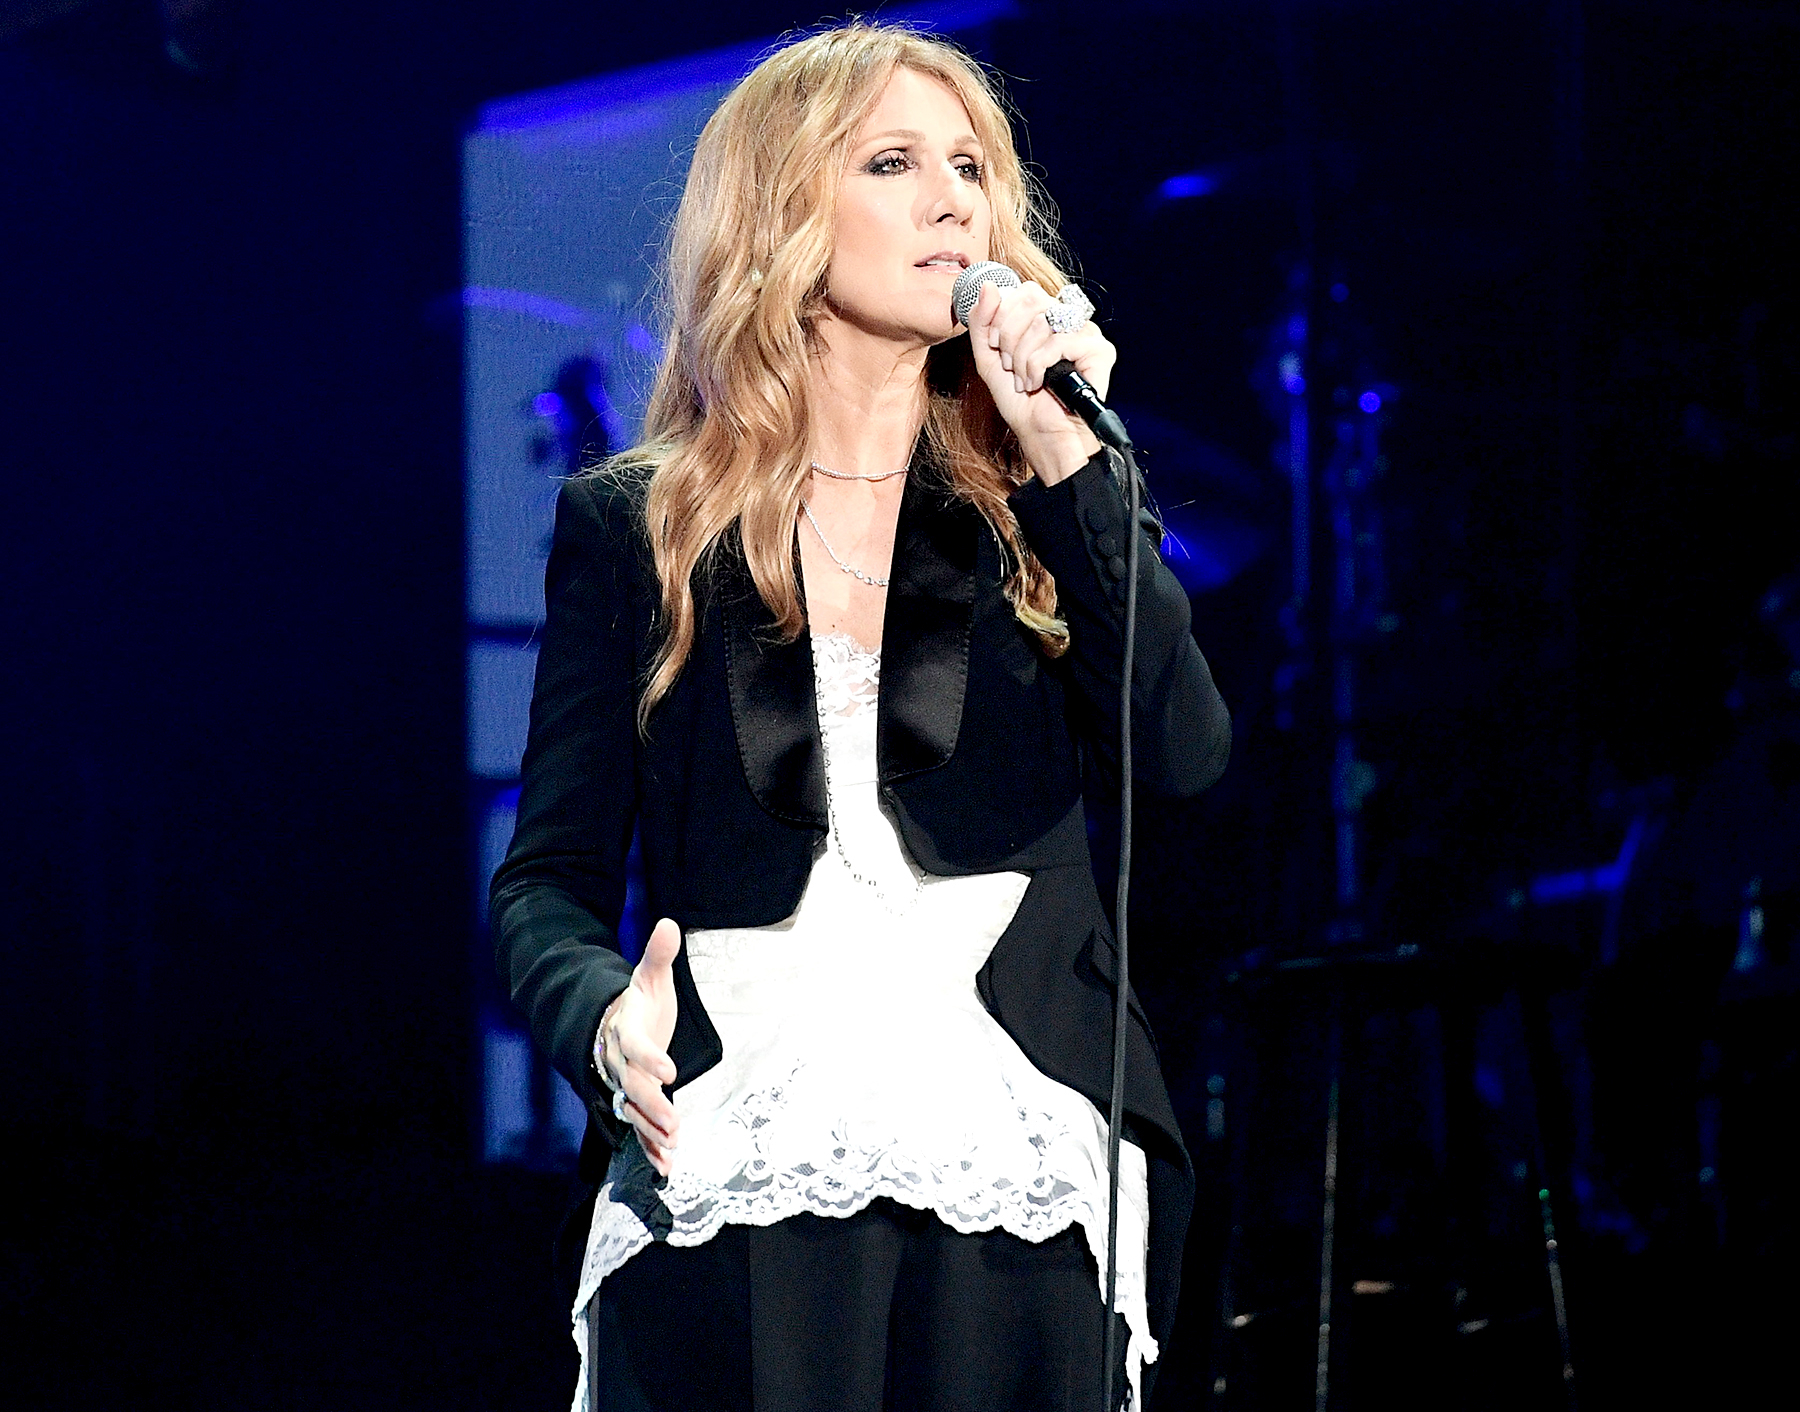 Celine Dion performs live at AccorHotels Arena Paris-Bercy in 2016.